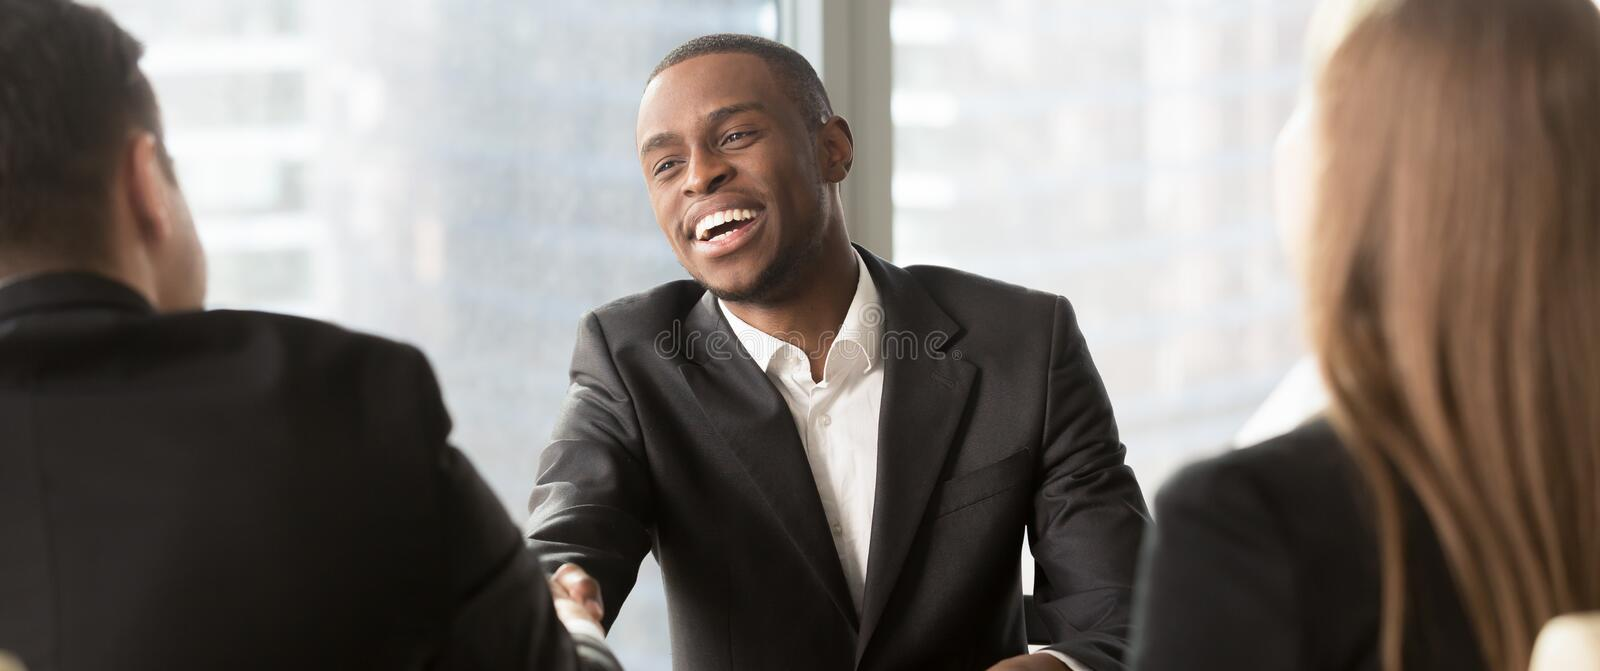 Hr manager handshaking congratulating black candidature with successful job interview royalty free stock photo